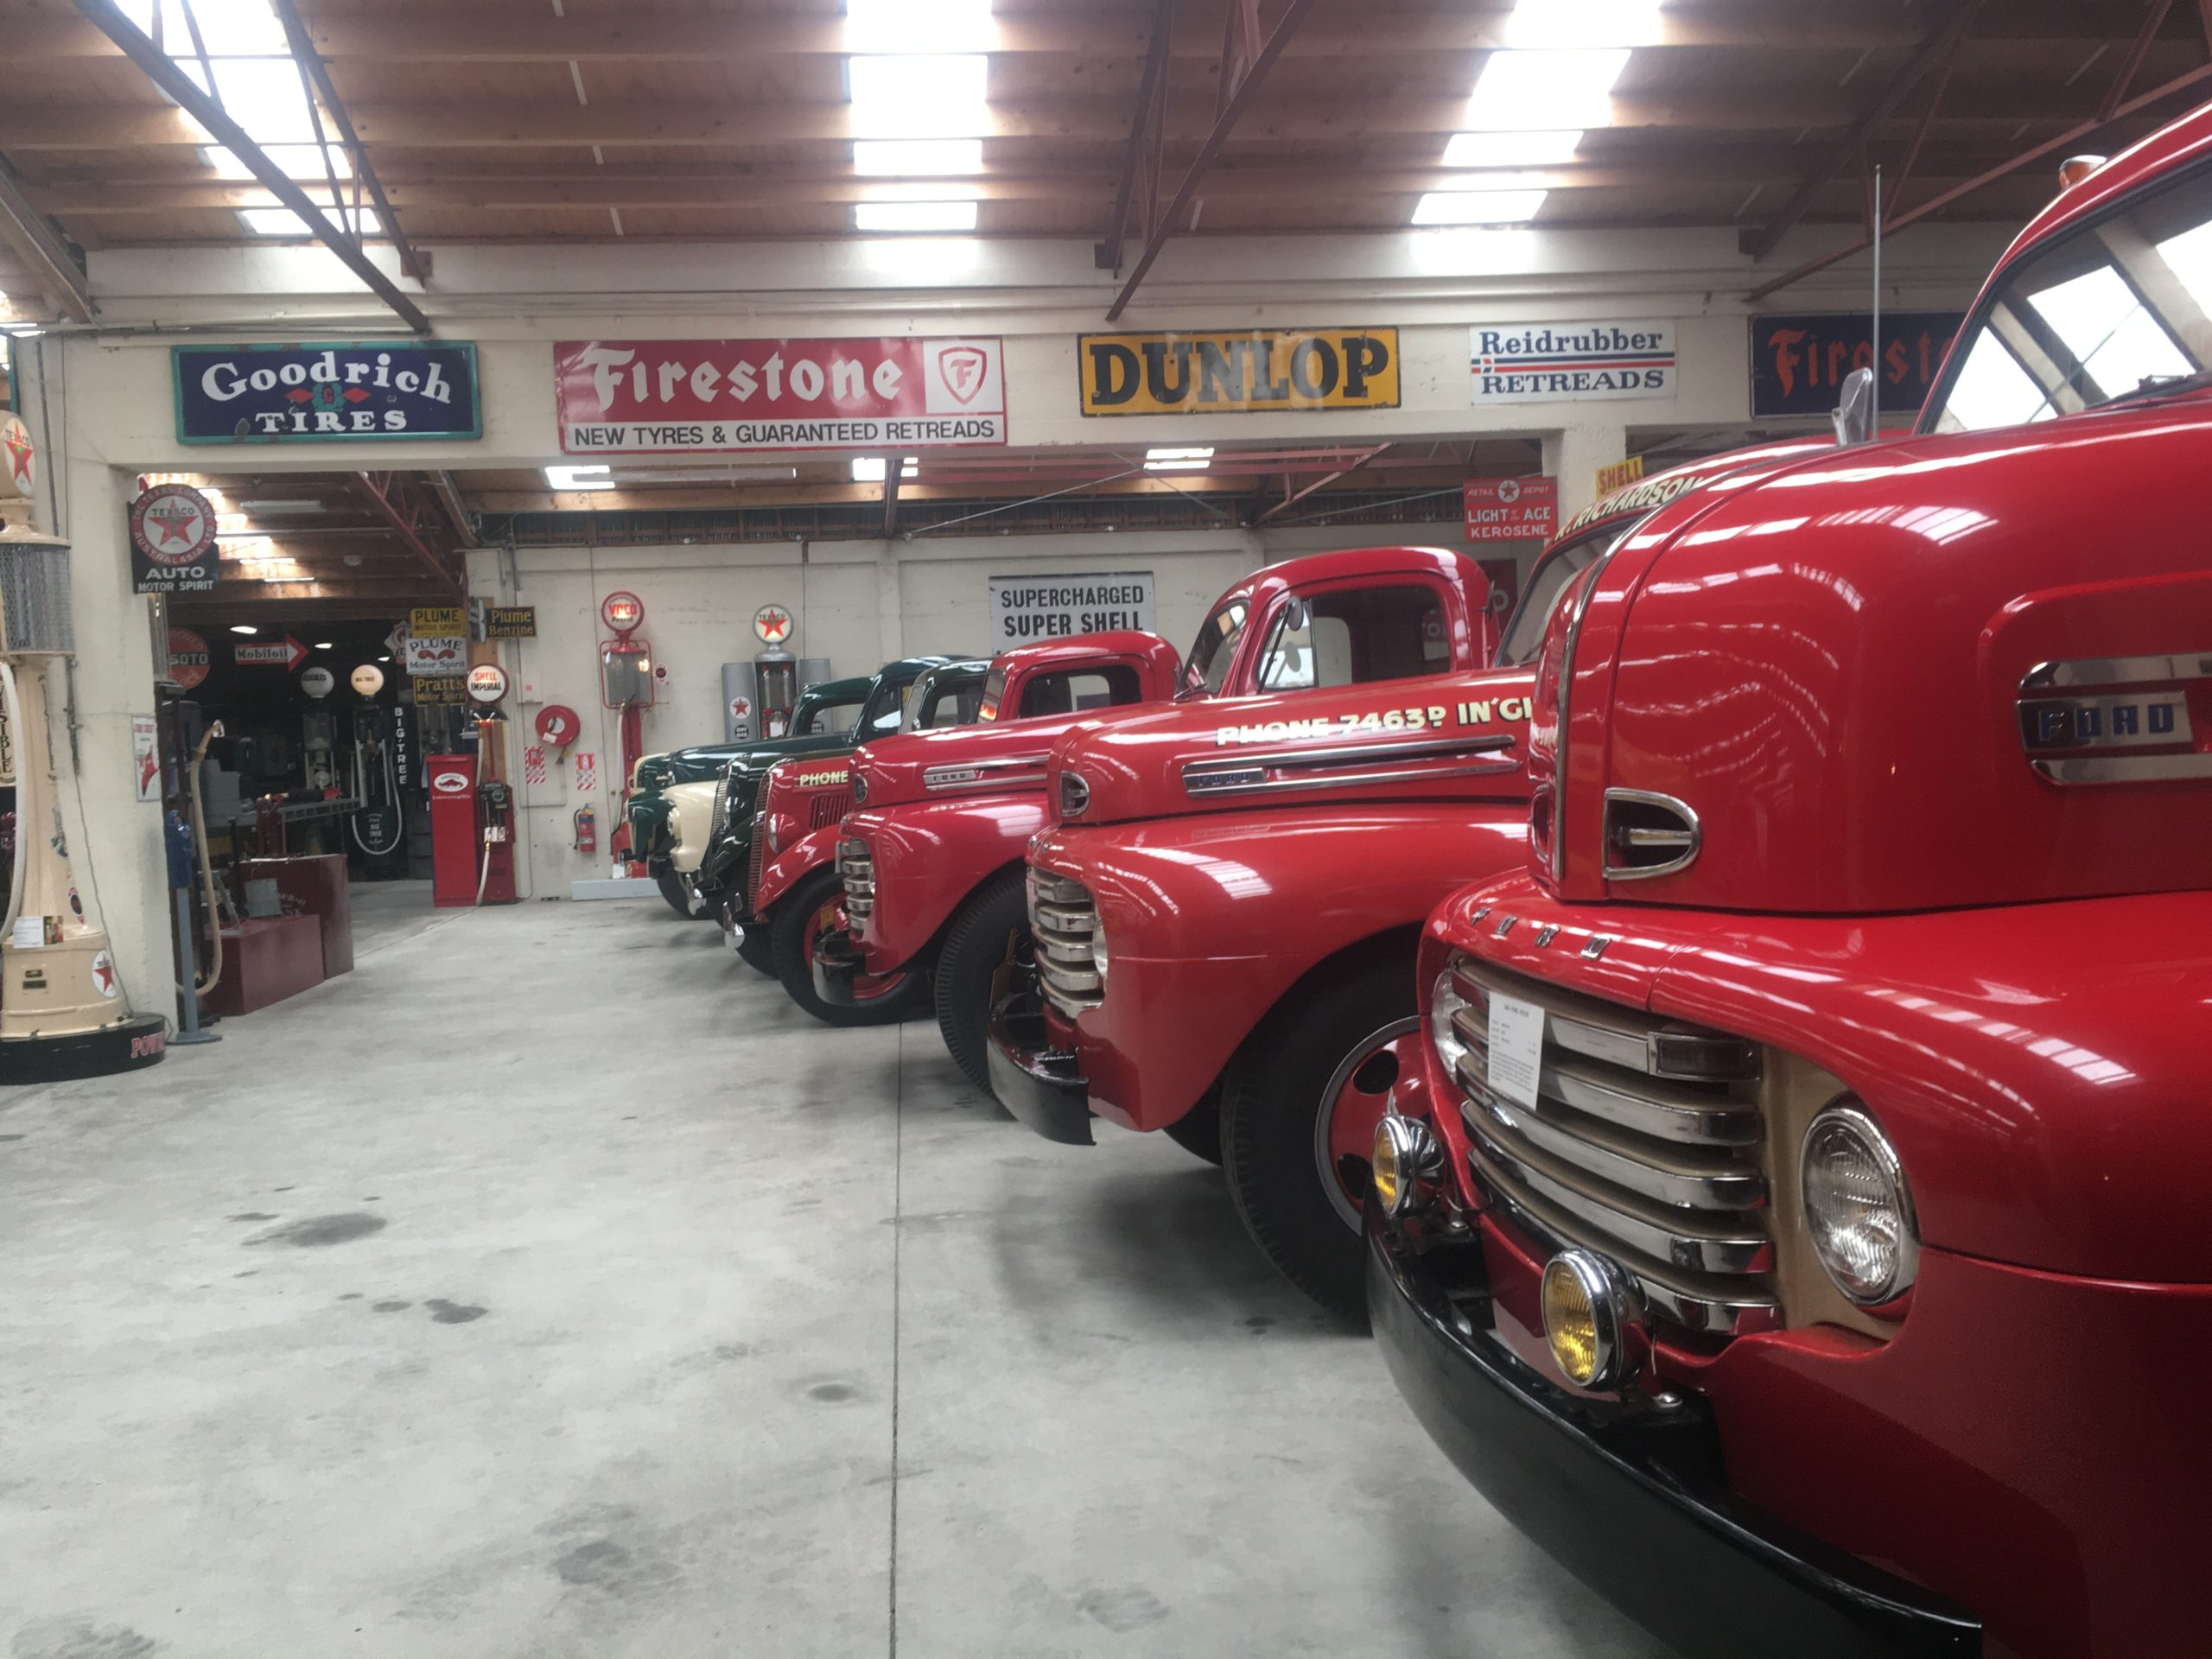 Invercargill's Transport Museum has some trucks - amongst others!